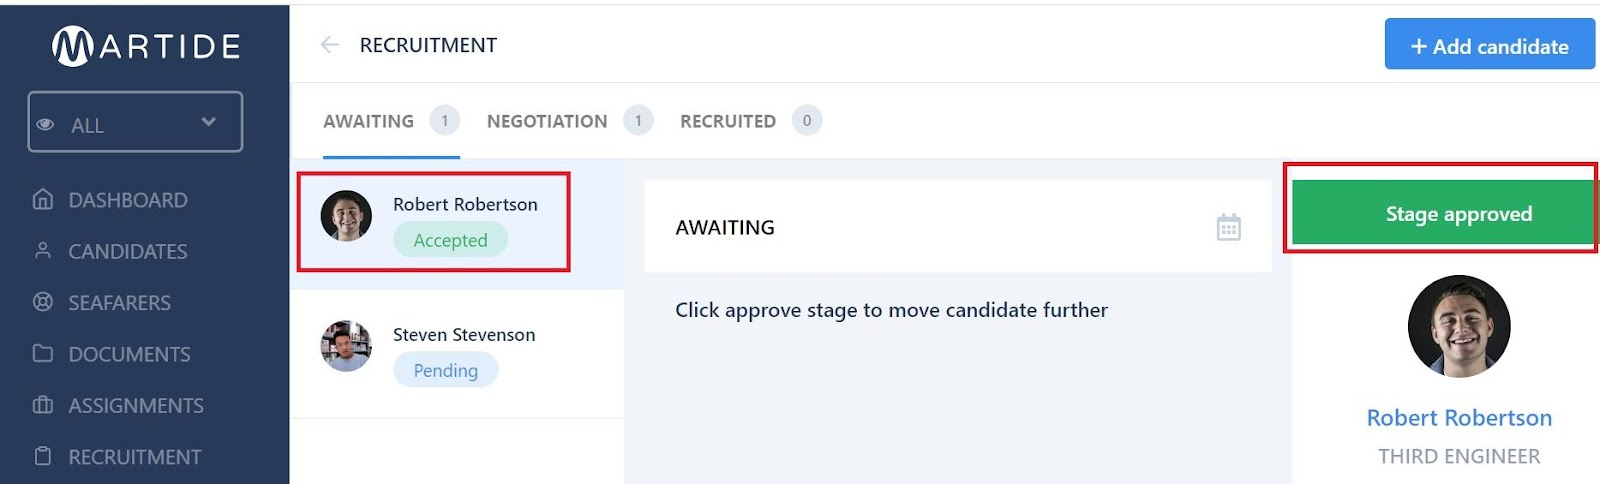 screenshot showing the stage approved message.